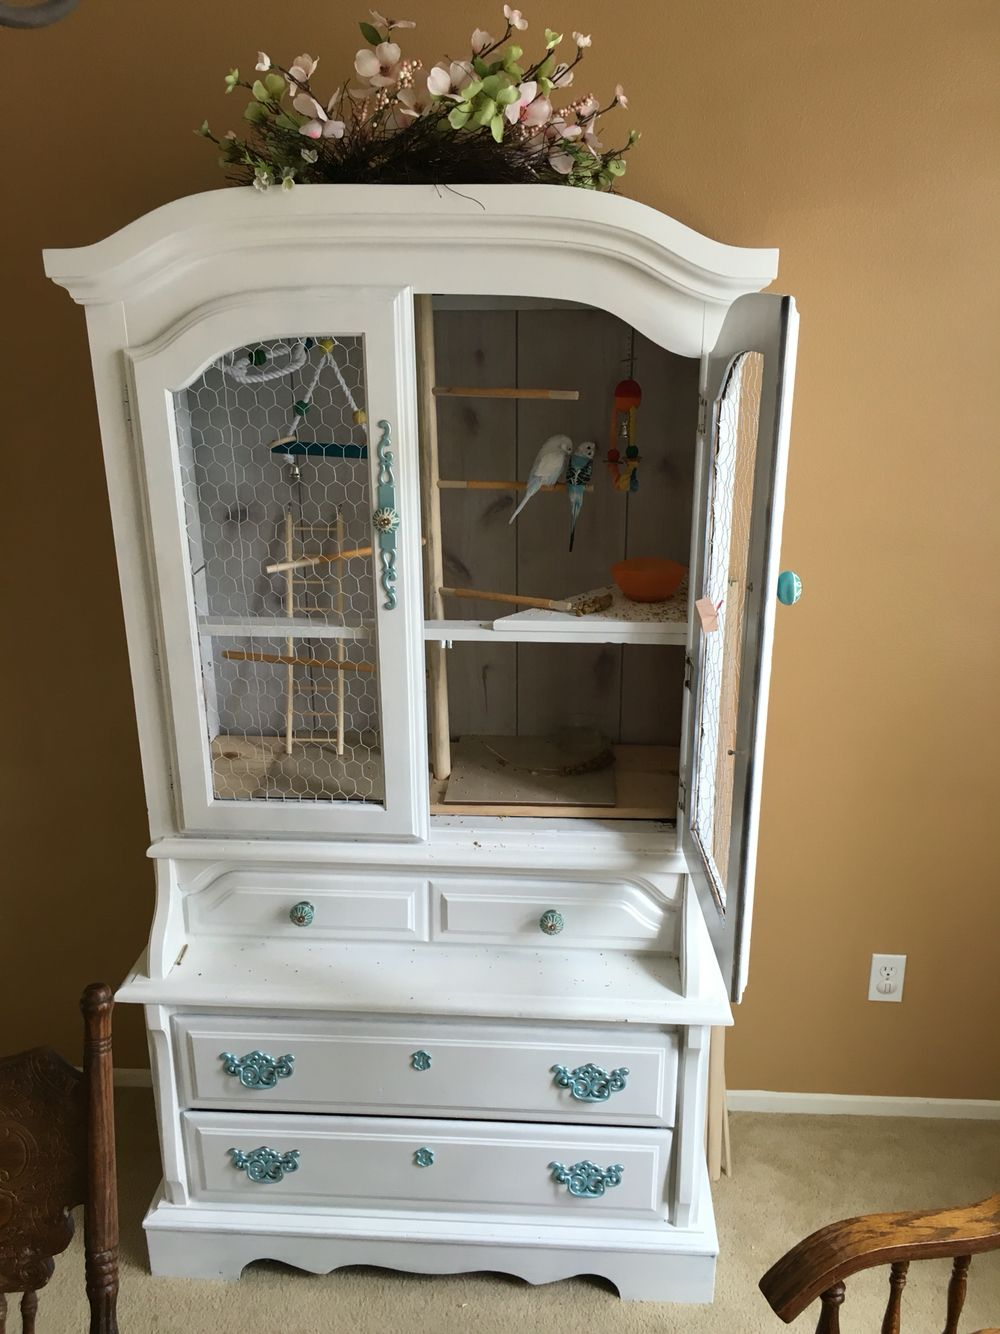 die besten 25 diy parakeet cage ideen auf pinterest selbstgebauter vogelk fig wellensittich. Black Bedroom Furniture Sets. Home Design Ideas